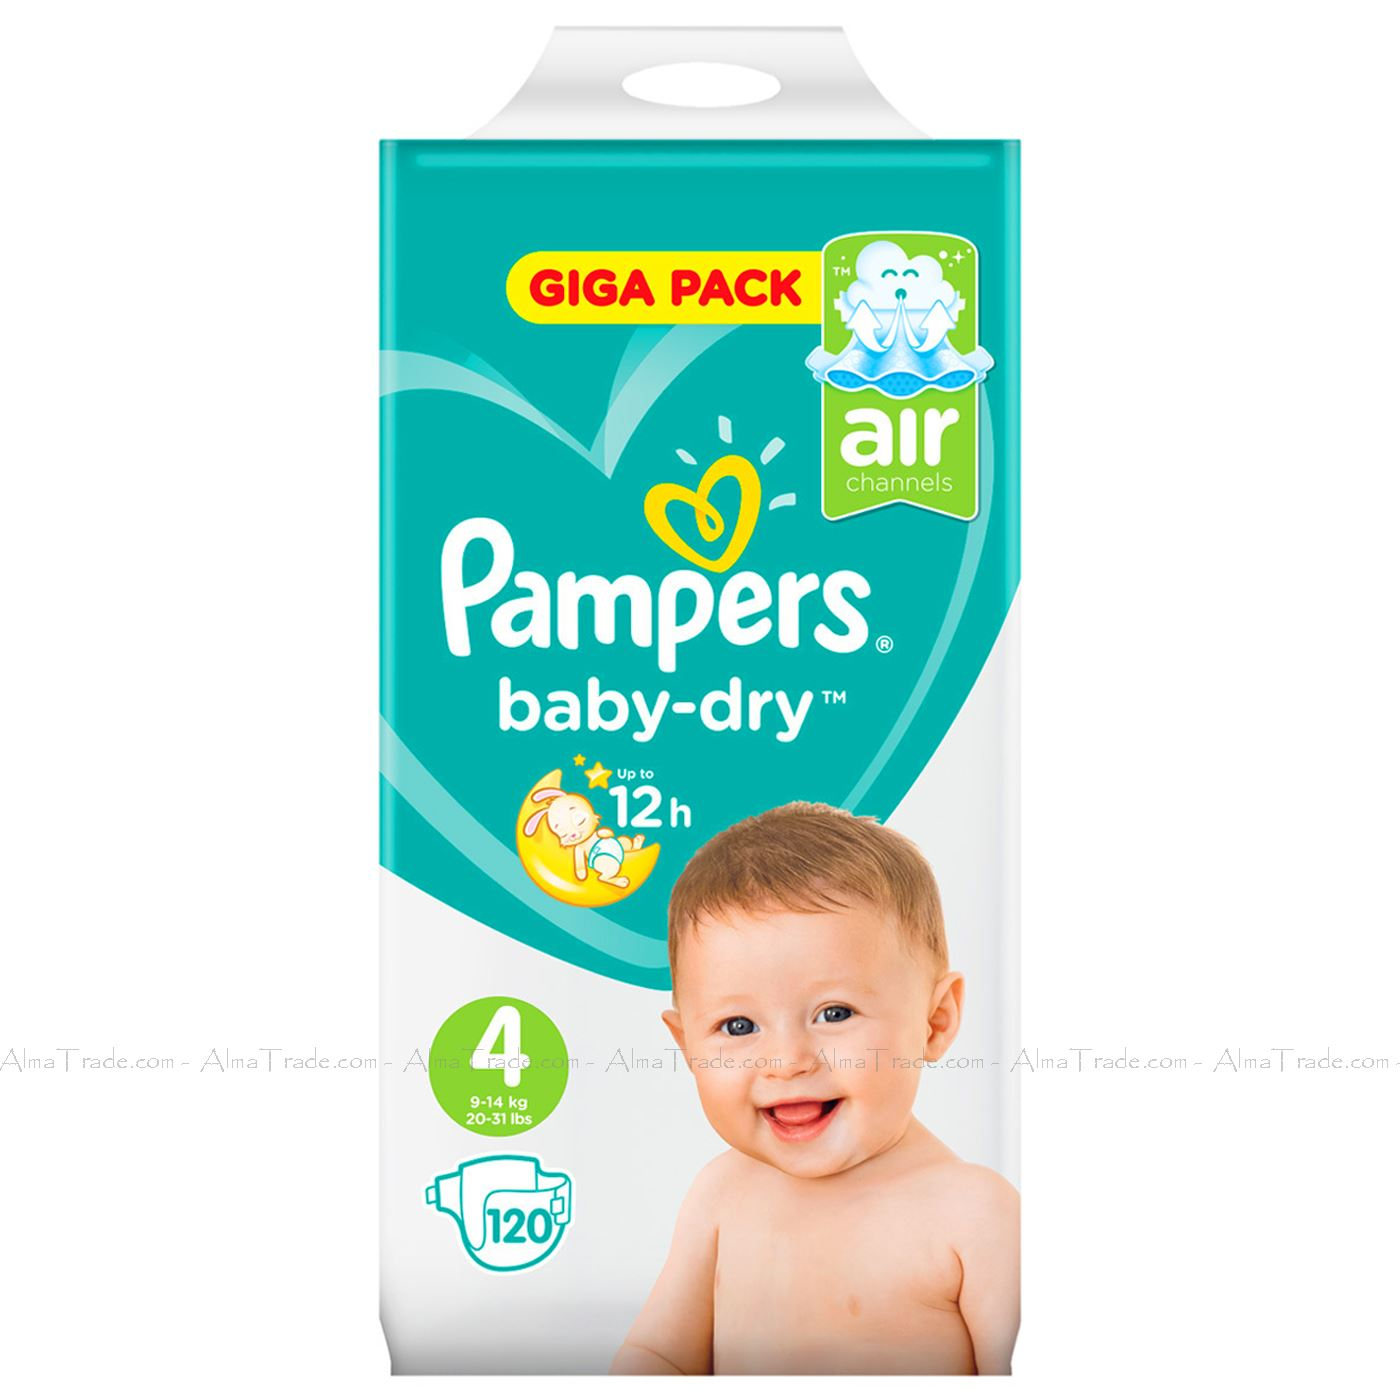 Pampers-Baby-Dry-Nappy-Air-Channels-Nappies-Size-1-2-3-4-5-6-7-Jumbo-Giga-Pack thumbnail 23